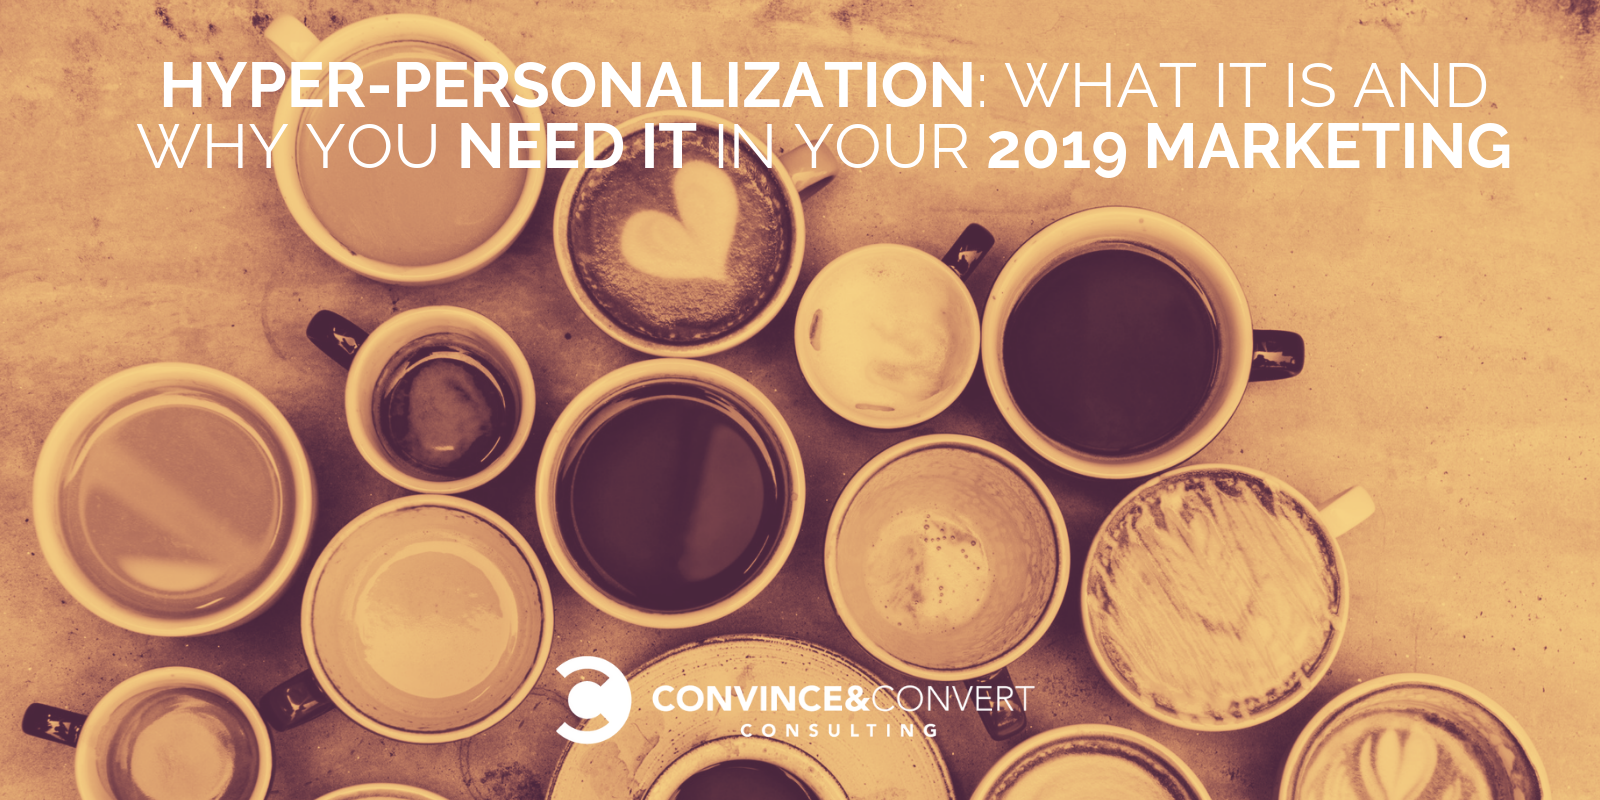 Hyper-Personalization: What It Is and Why You Need It in Your 2019 Marketing